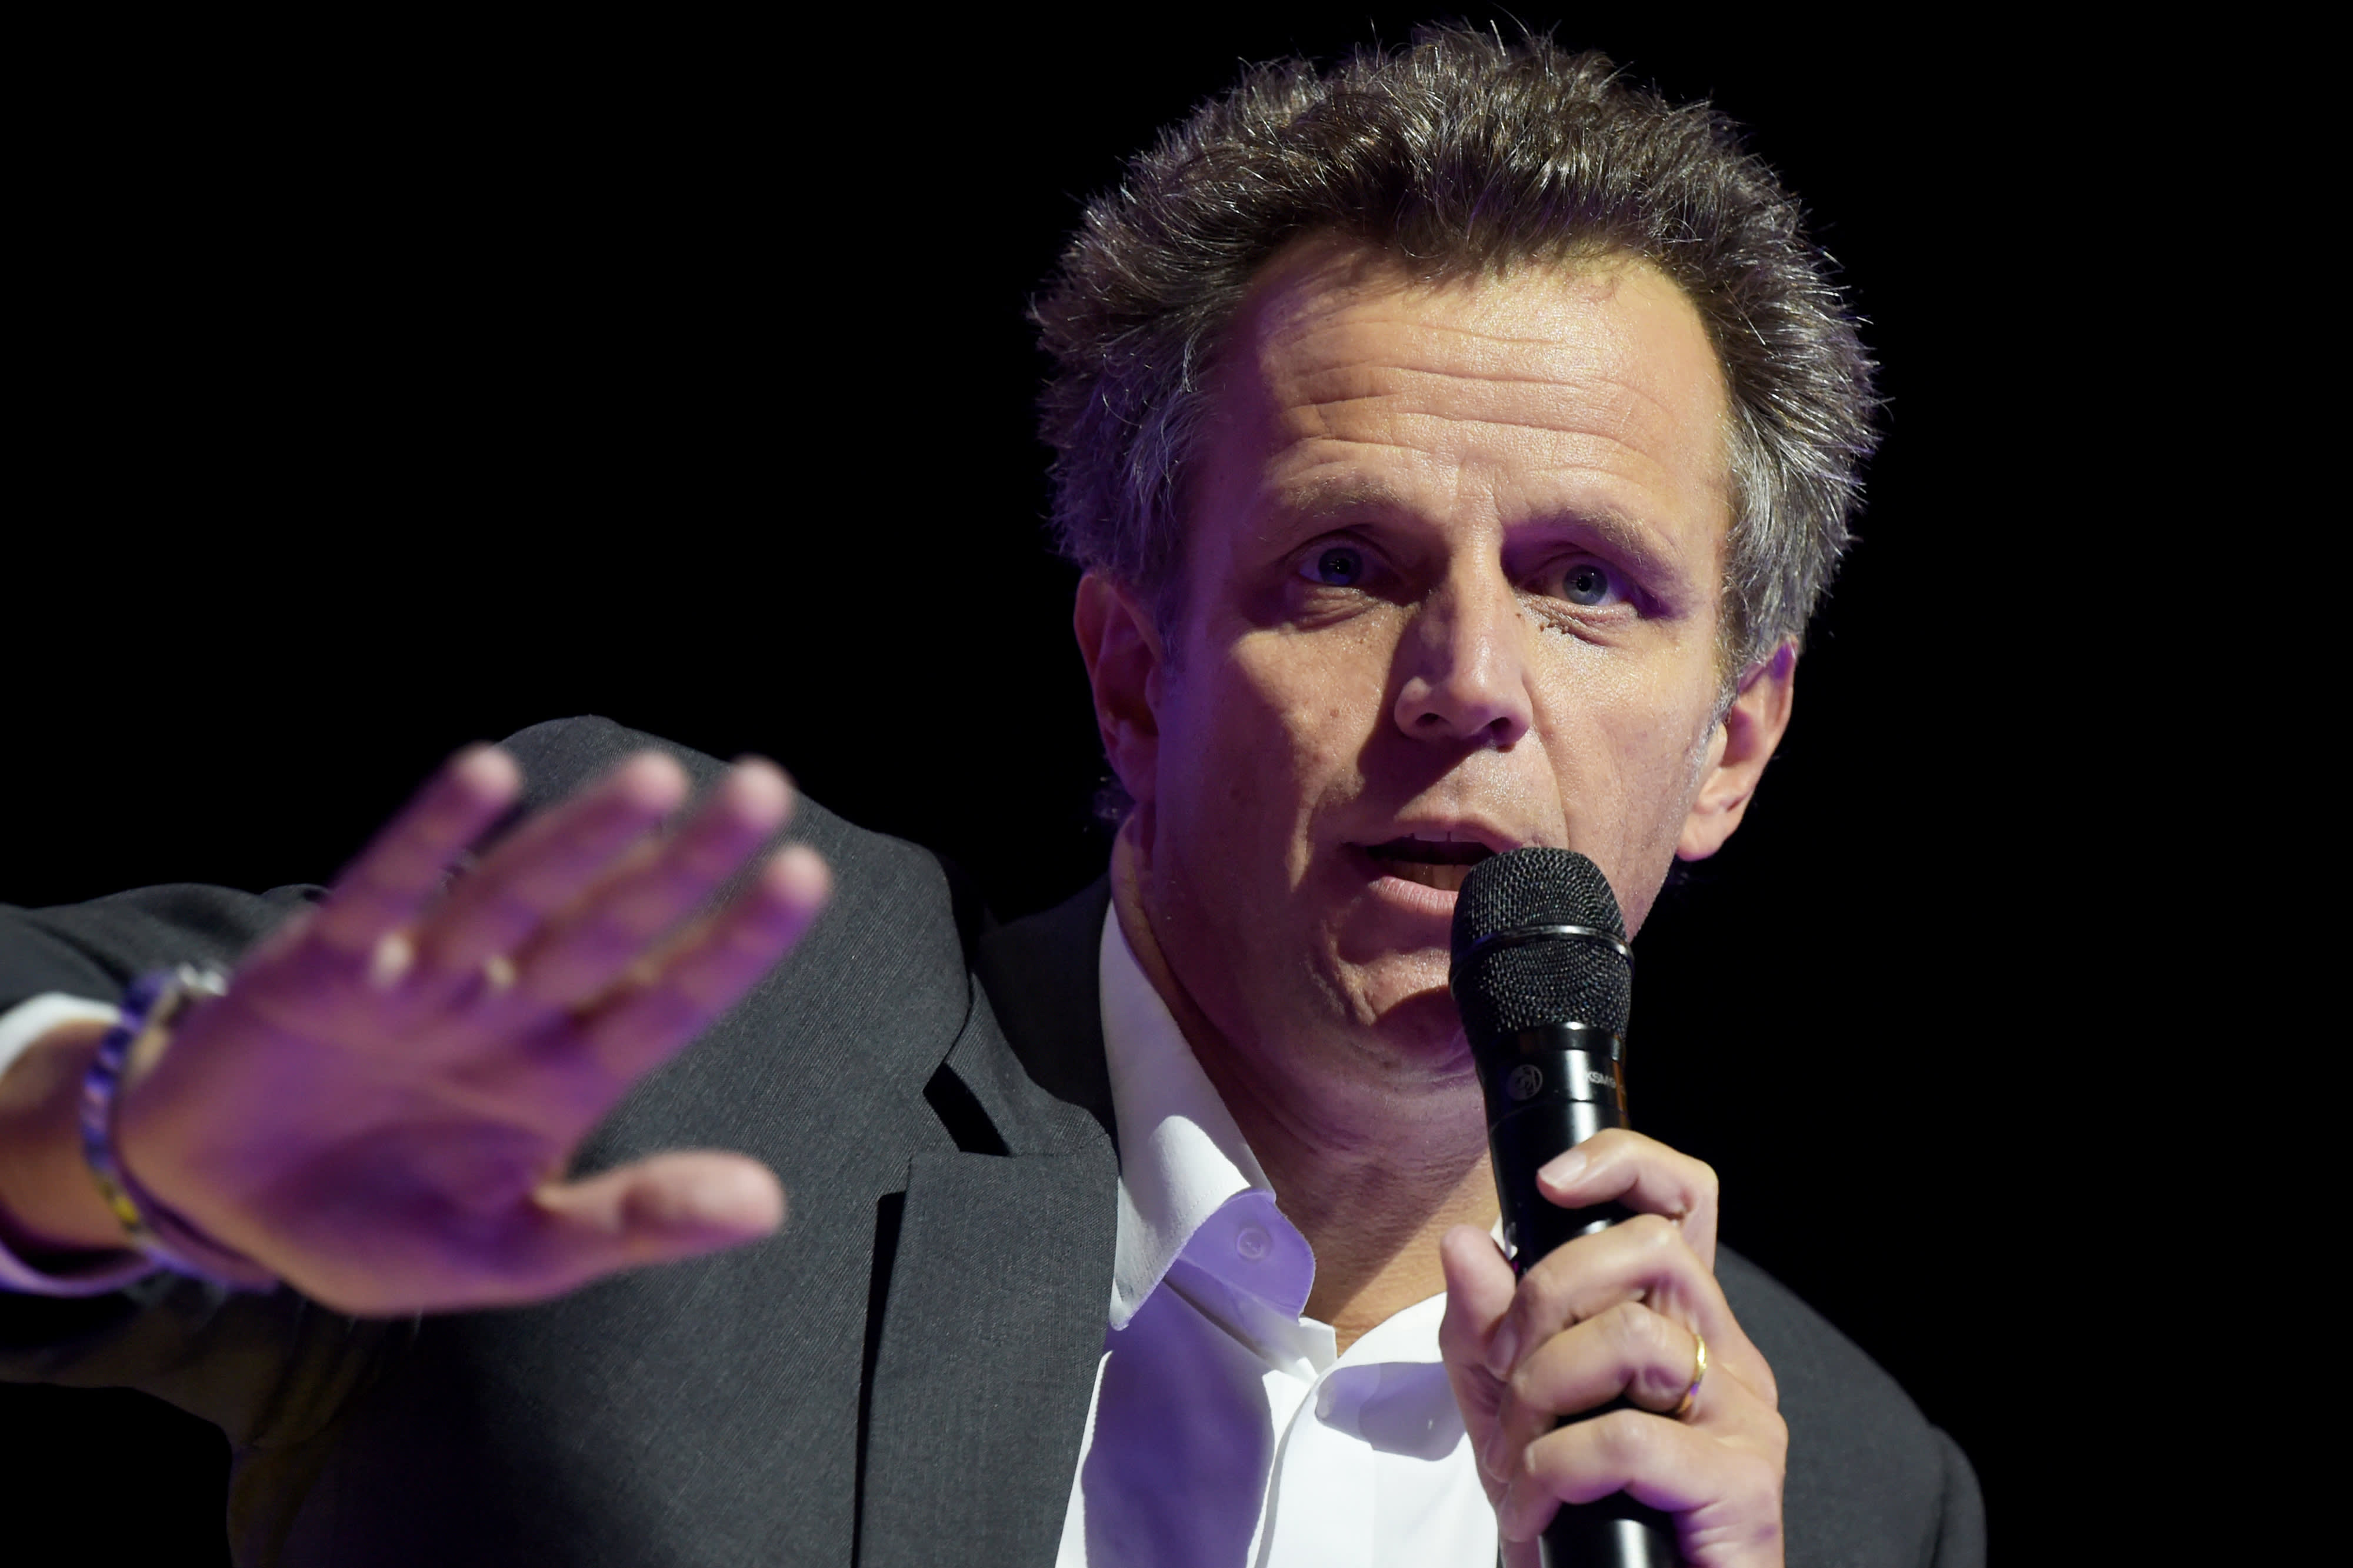 Shares of ad giant Publicis plunge after cut to revenue guidance